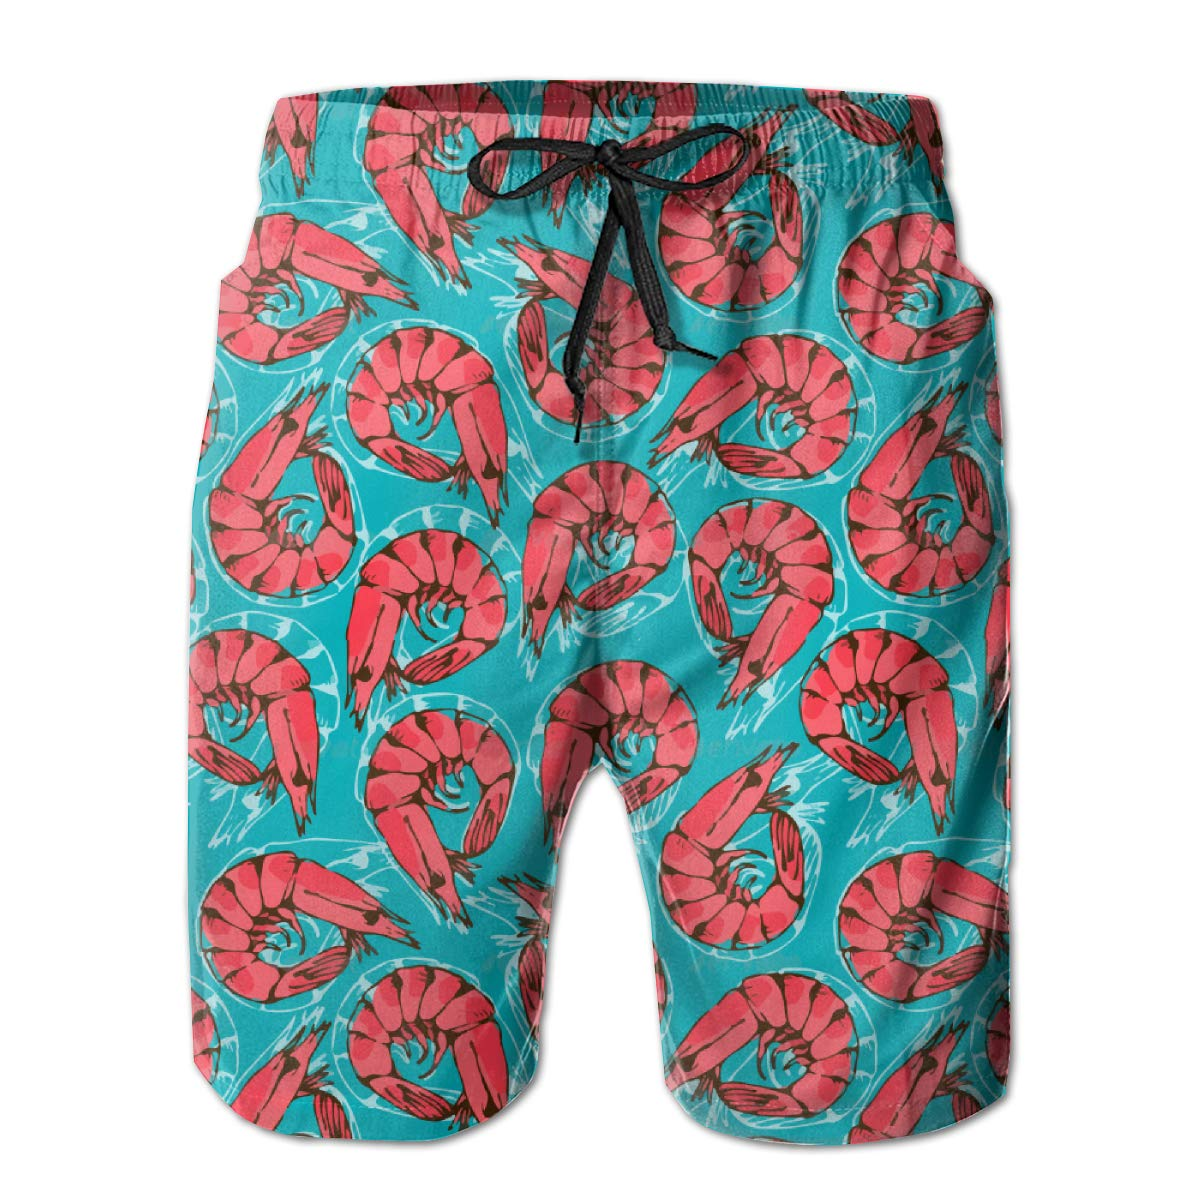 Men's Swim Trunks with Pockets & Waist Drawstring - Quick Dry Beach Surfing Running Swimming Shorts - Red Shrimp Seafood Teal Casual Soft Board Shorts - No Mesh Lining